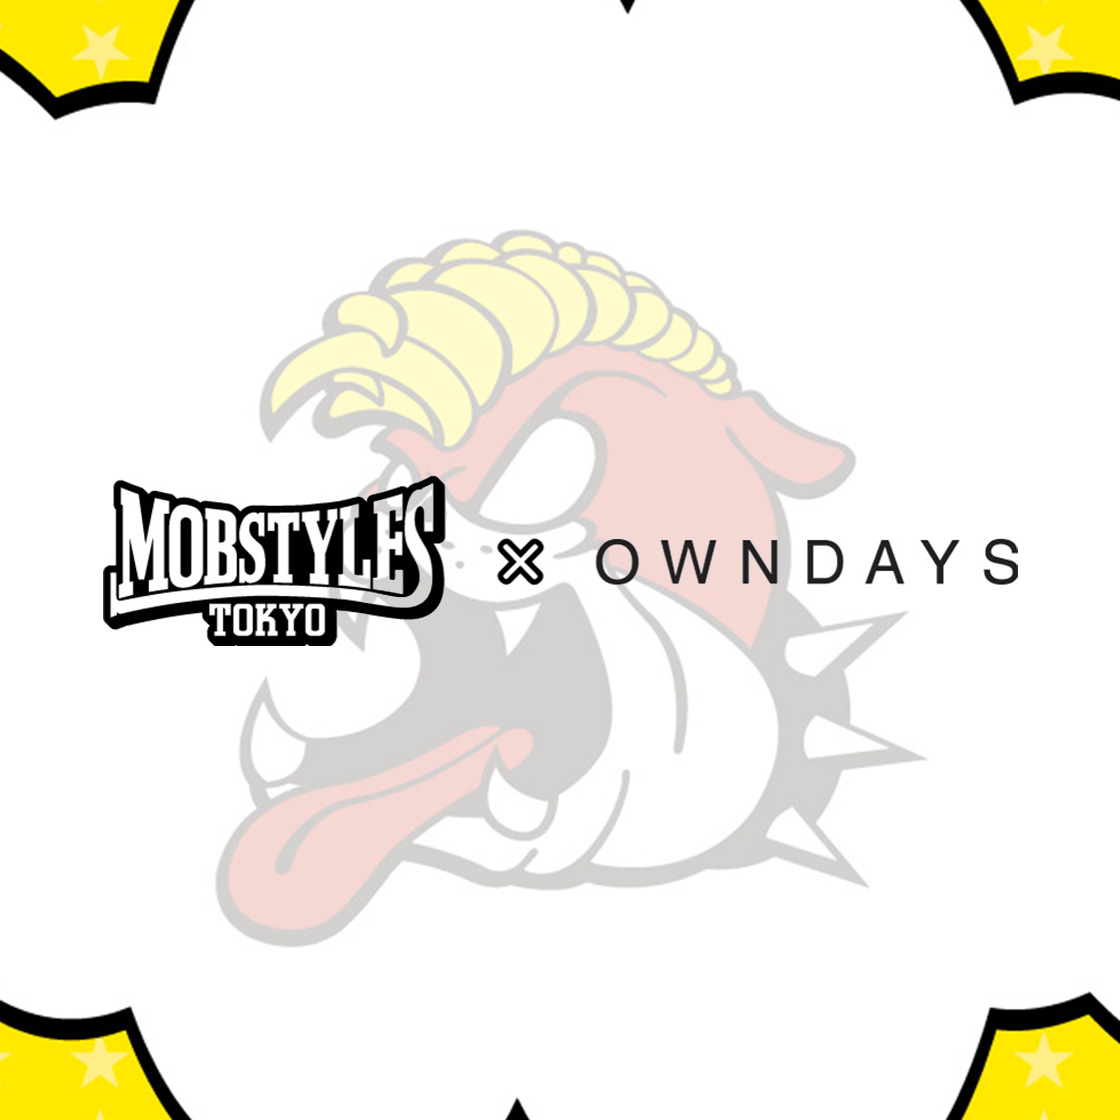 MOBSTYLES x OWNDAYS